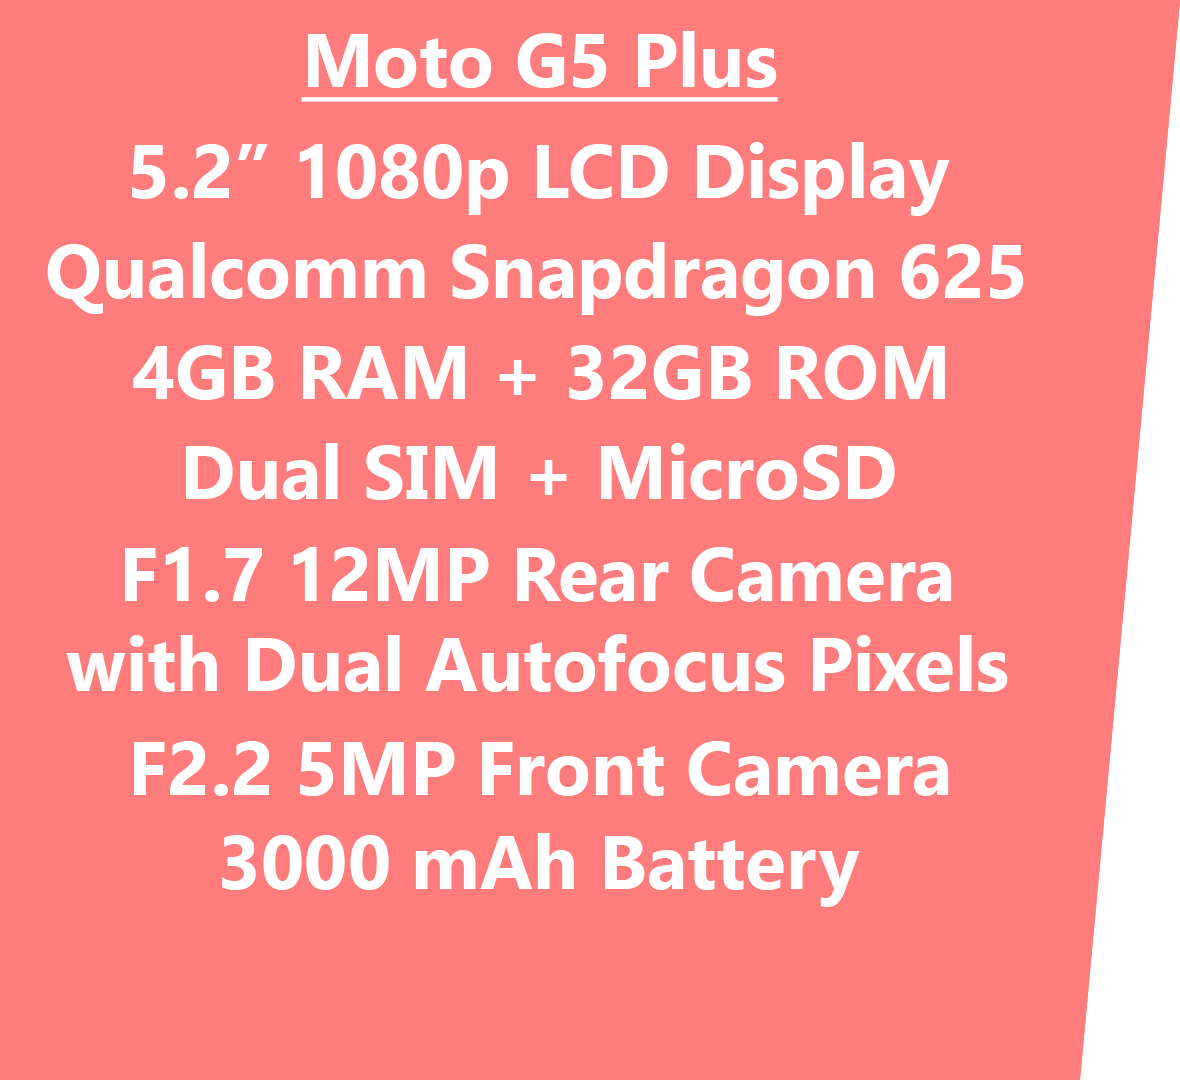 Motorola Moto G5 Plus Review: The Budget Smartphone with